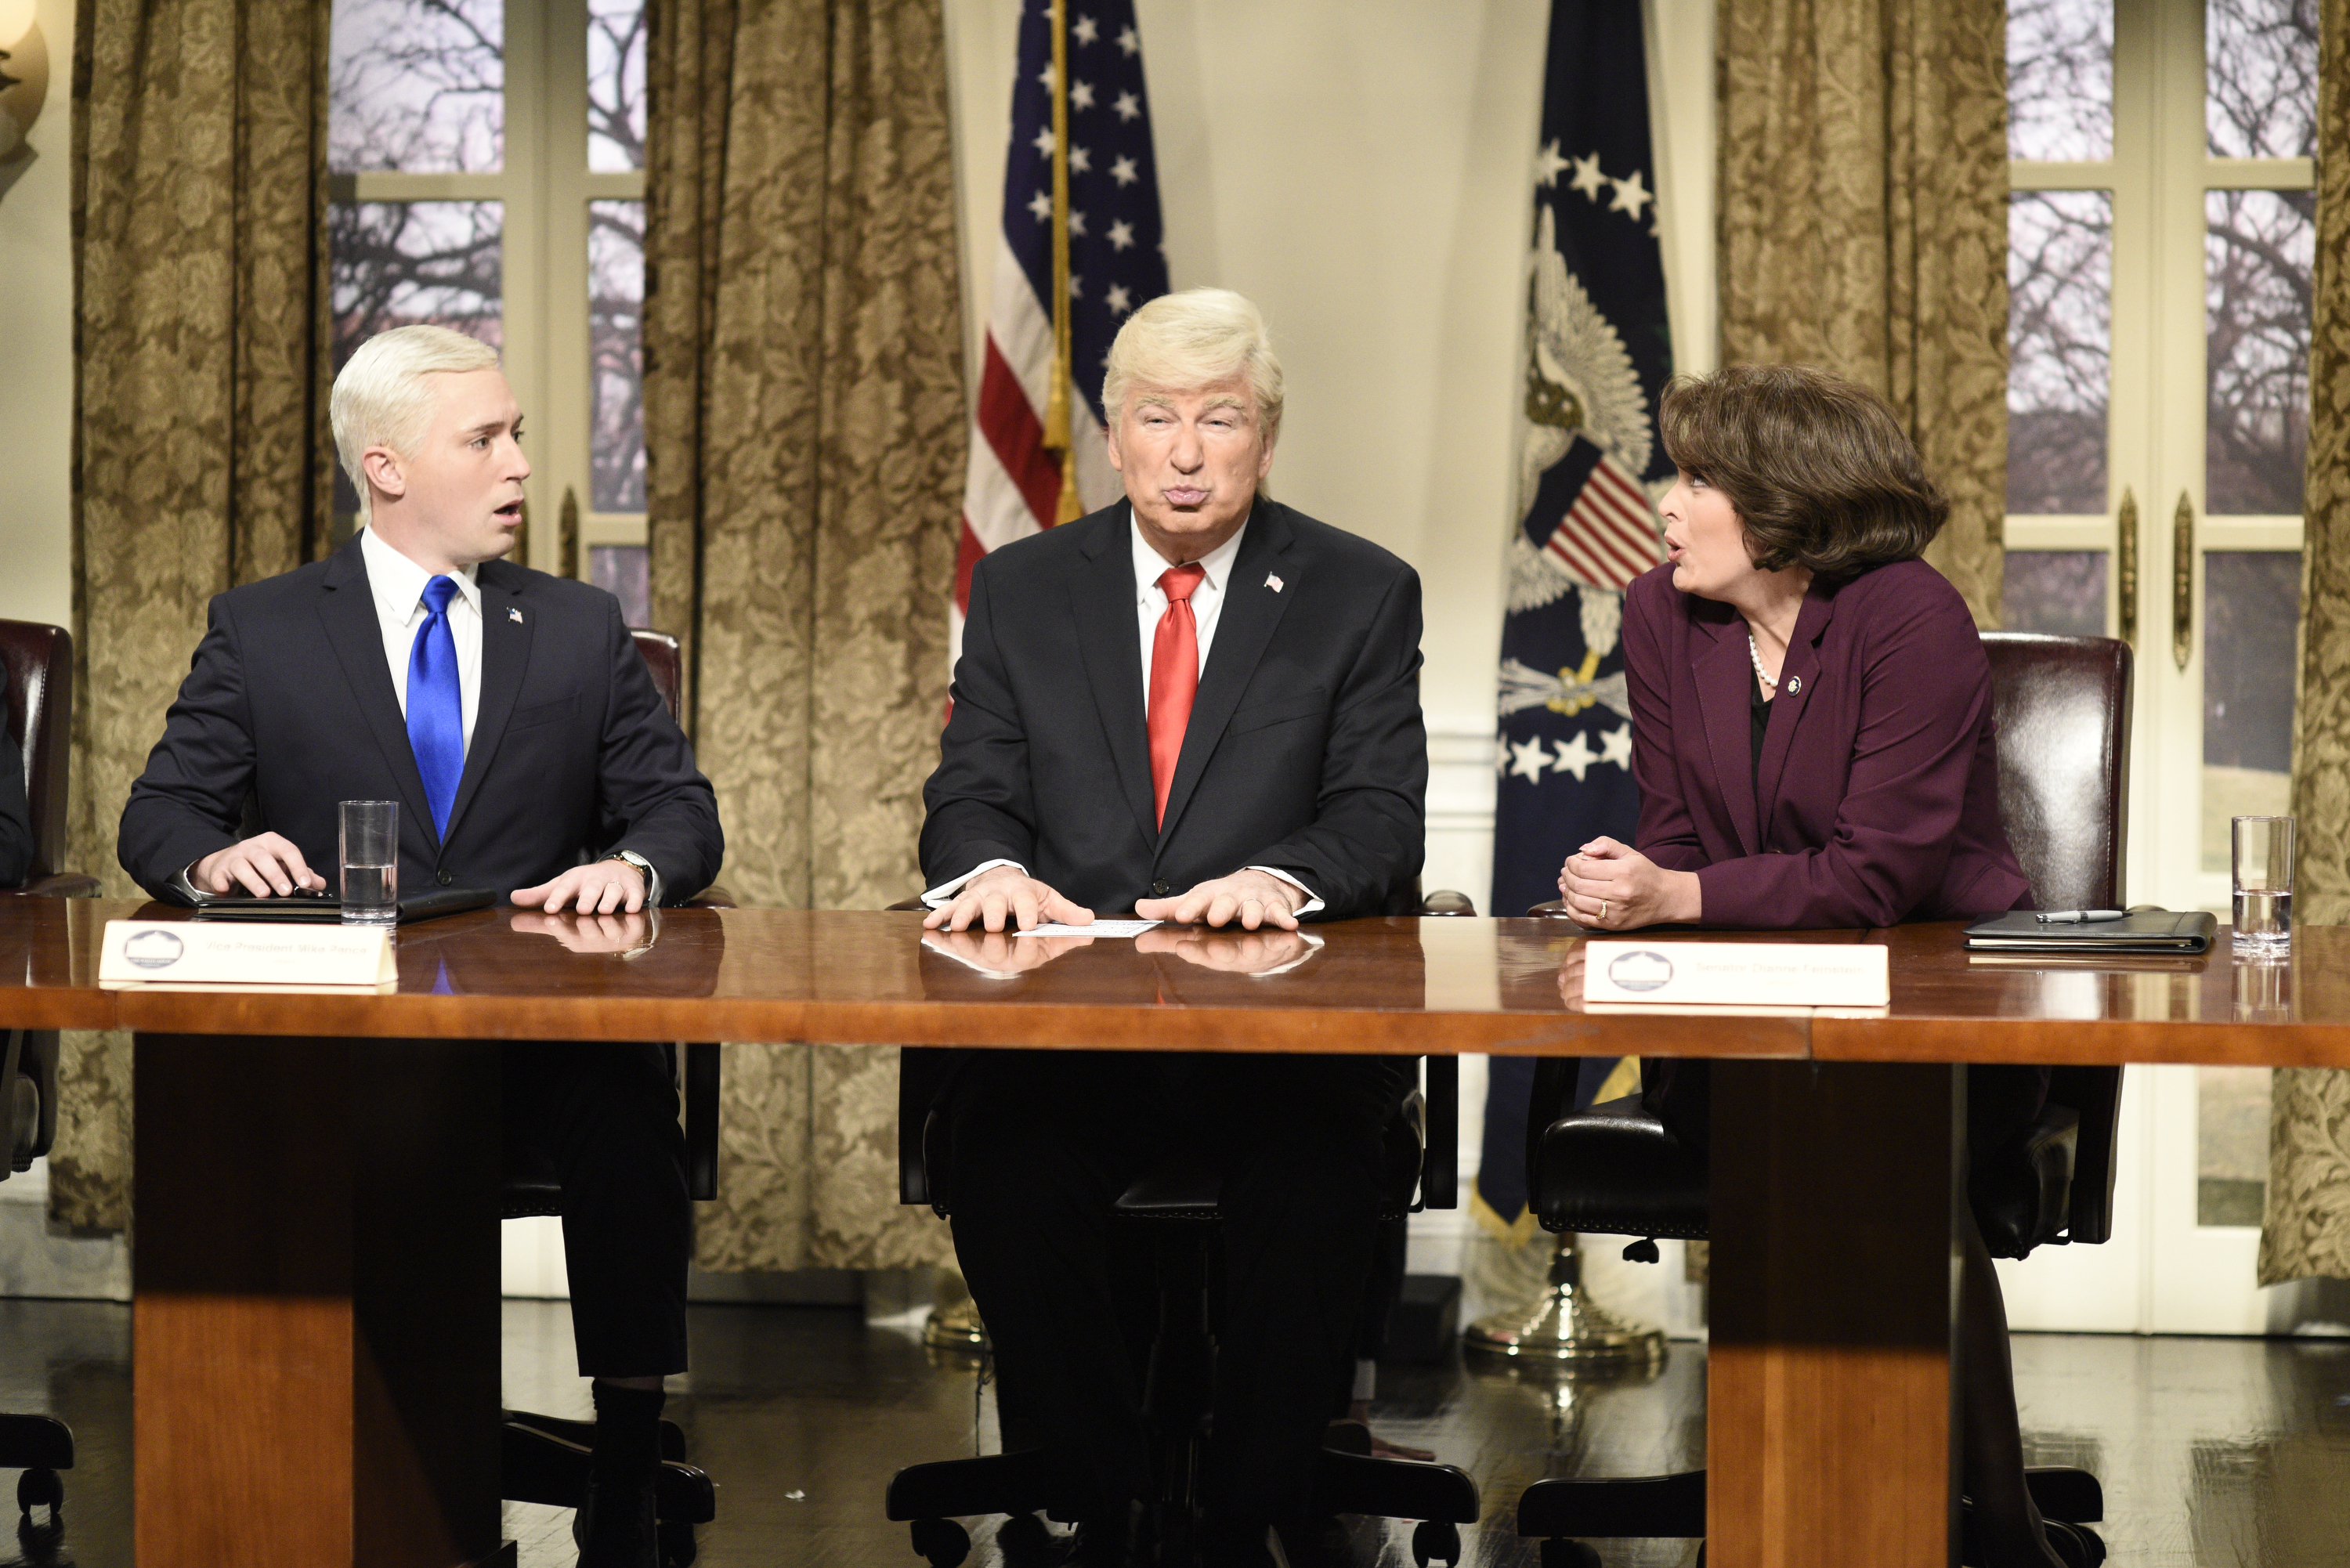 Beck Bennett as Vice President Mike Pence, Alec Baldwin as President Donald J. Trump, Cecily Strong as Senator Dianne Feinstein during the  Presidential Address Cold Open  in Studio 8H on Saturday, March 3, 2018